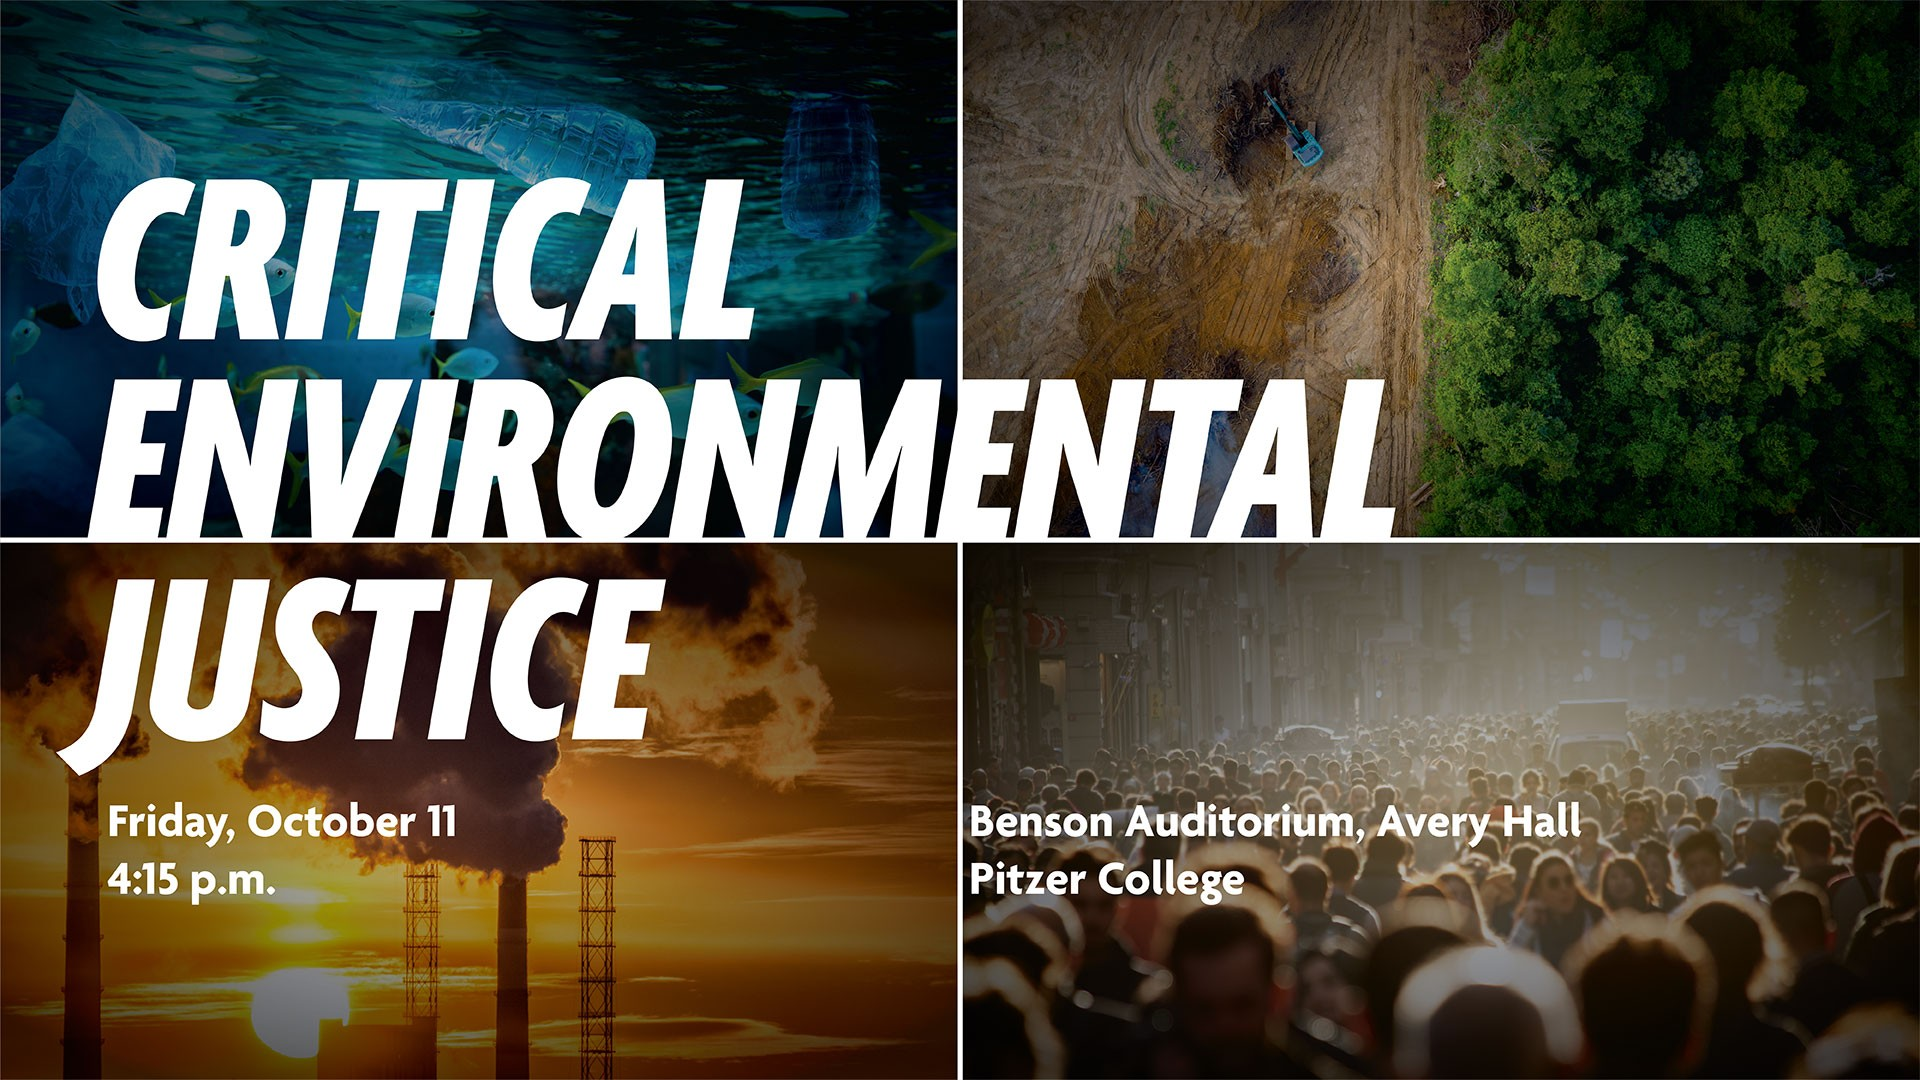 Critical Environmental Justice